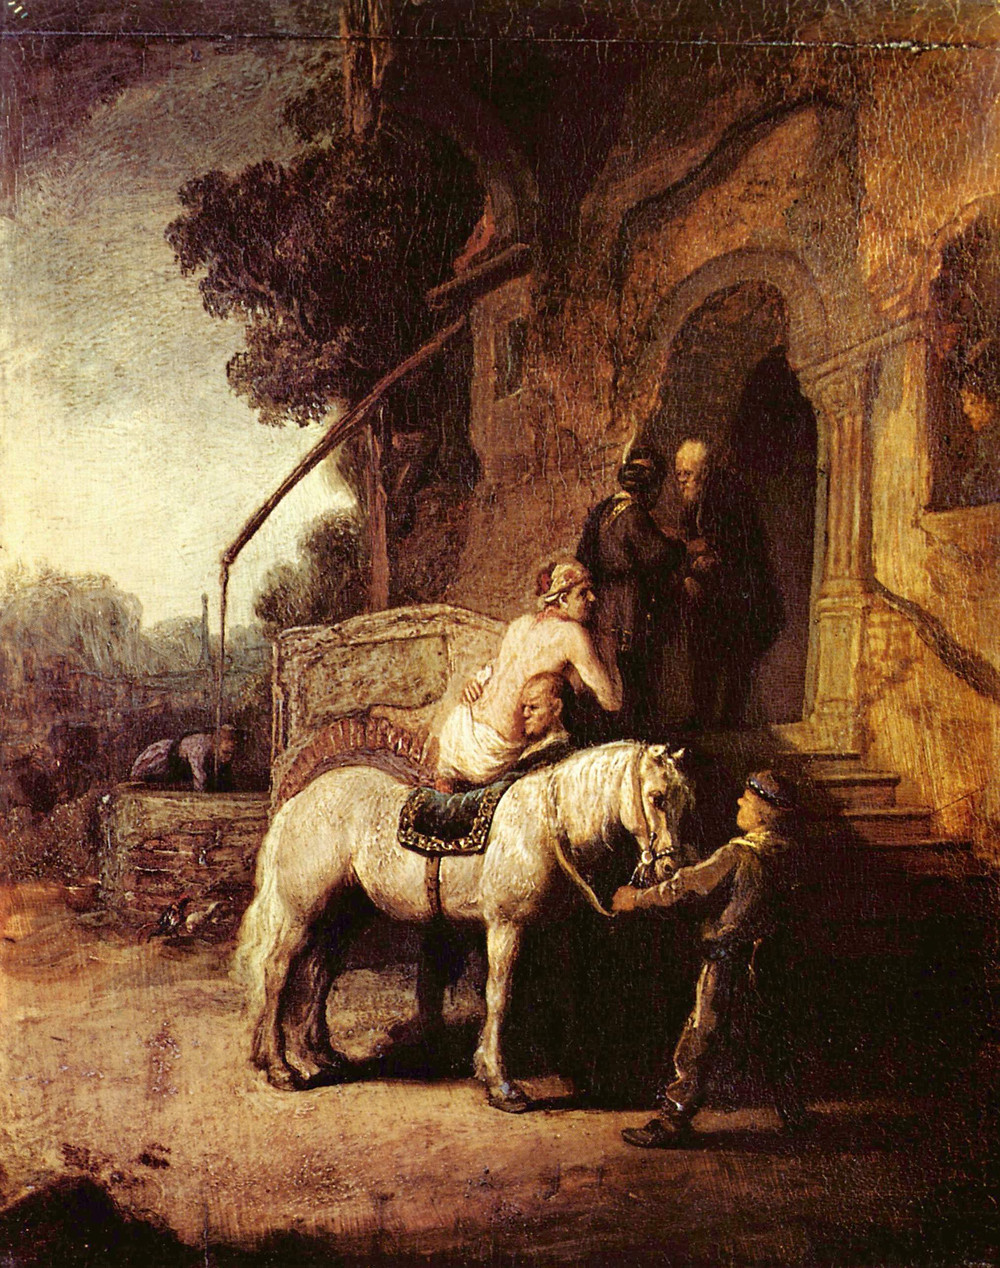 The Good Samaritan depiction by Rembrandt